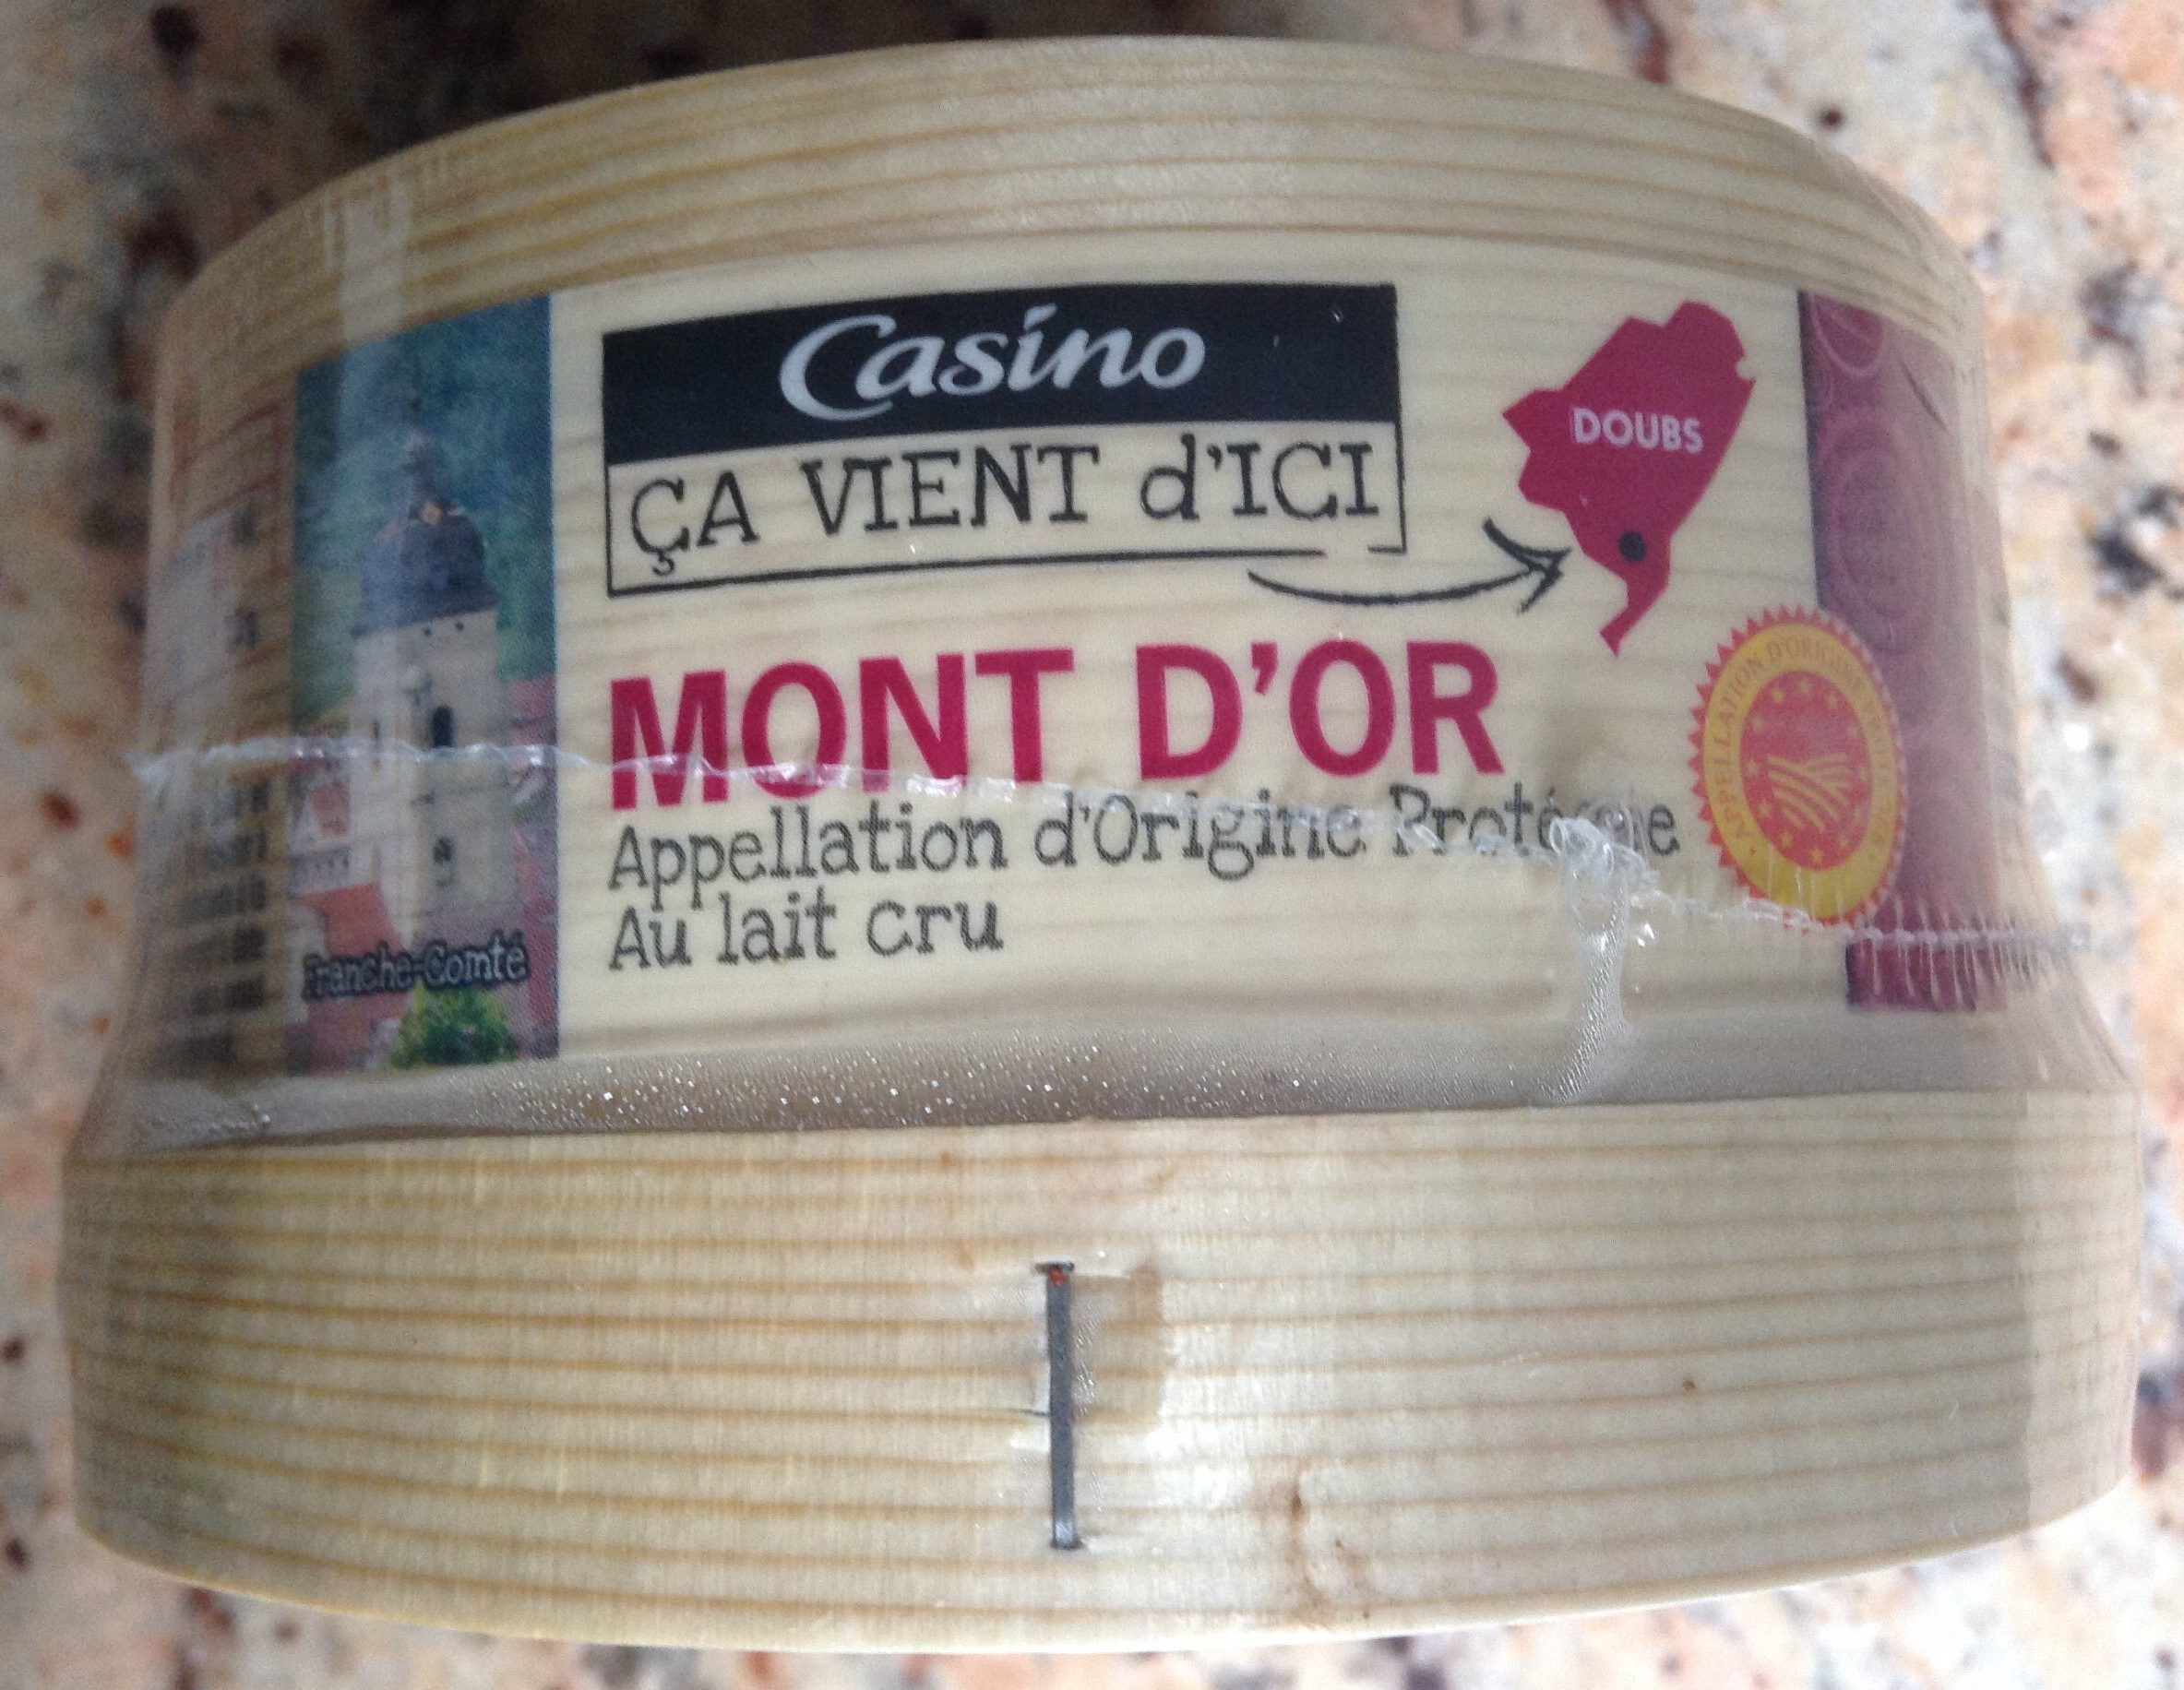 Mont d'Or Appellation d'Origine Protégée au lait cru - Product